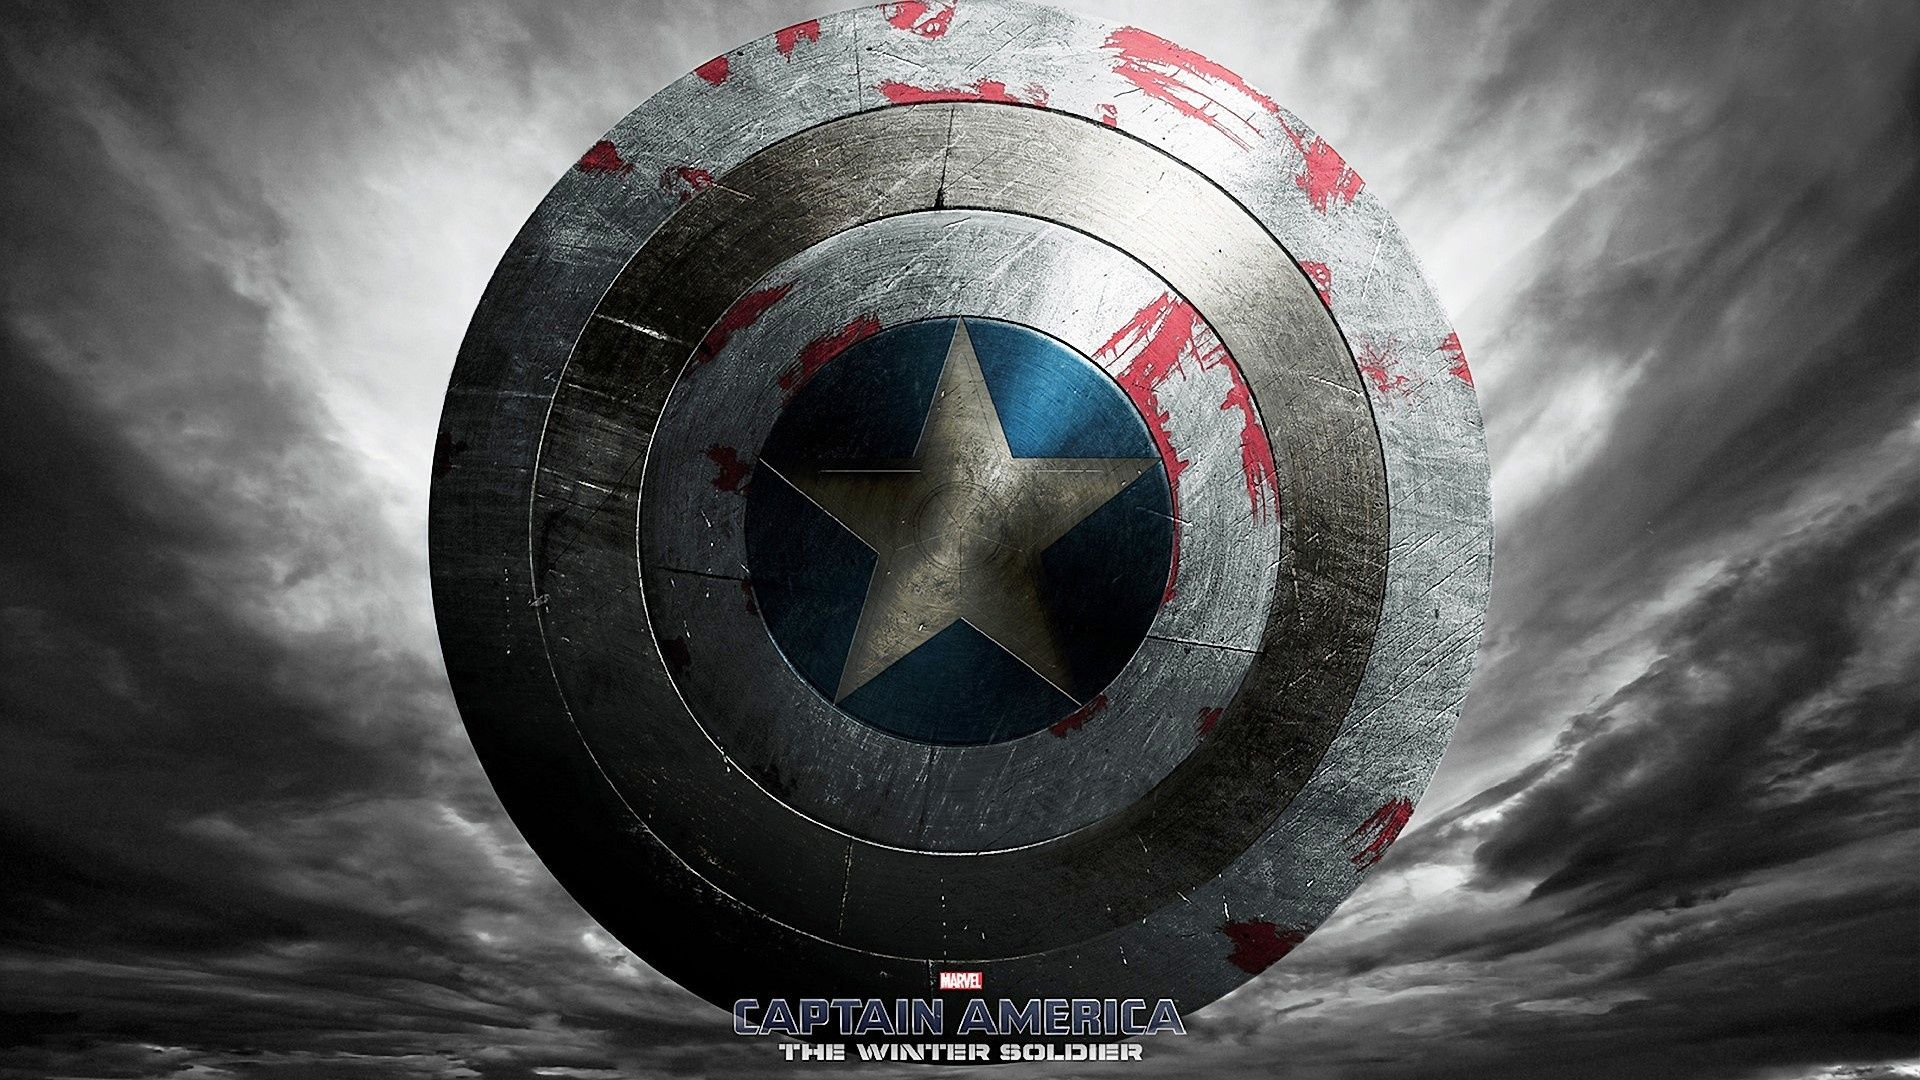 Undefined Shield Wallpaper 32 Wallpapers Adorable Wallpapers Captain America Shield Wallpaper Captain America Winter Soldier Captain America Wallpaper 1080p full hd 1080p captain america hd